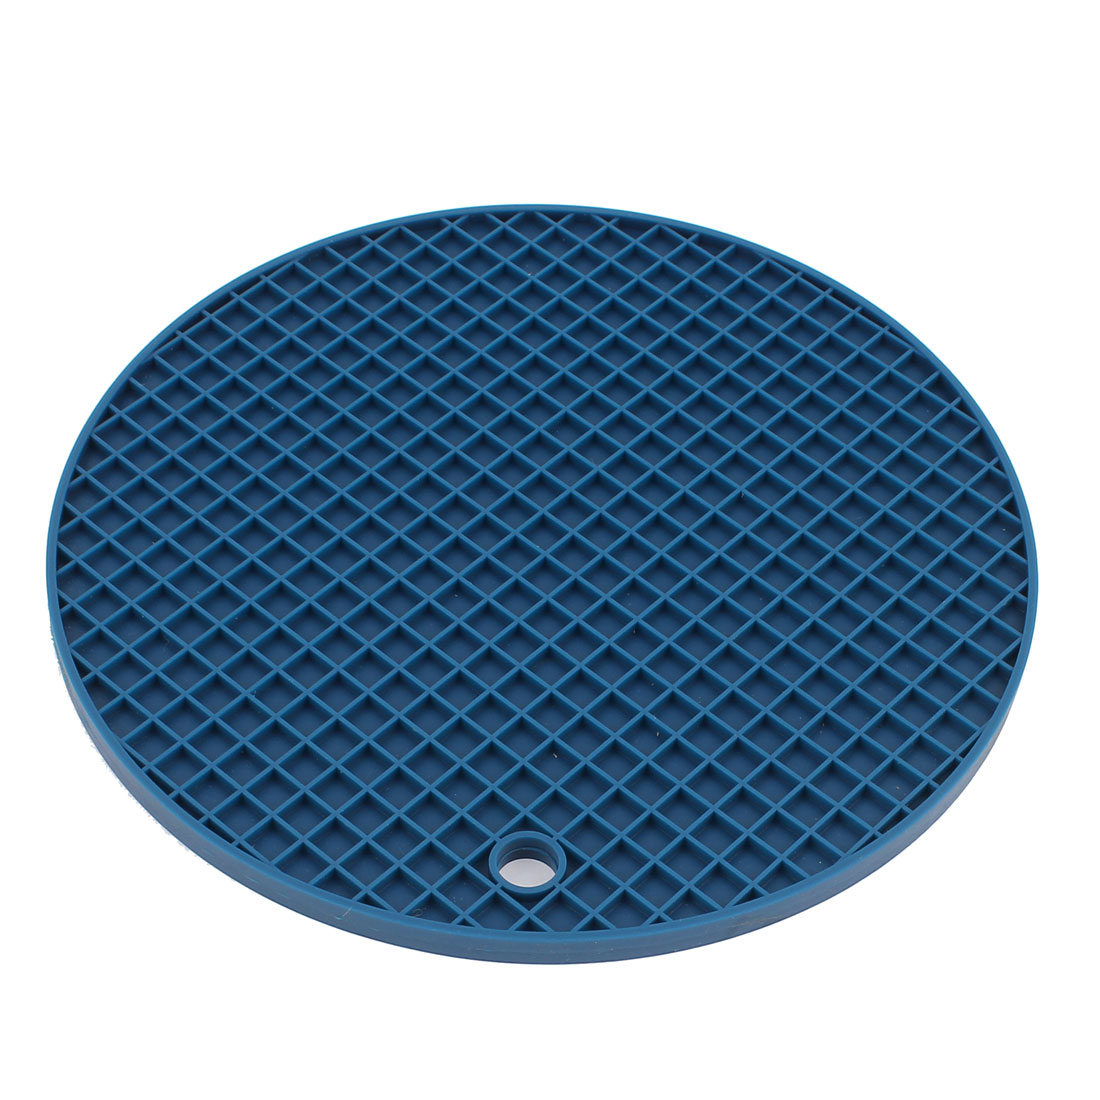 Household Silicone Round Shaped Non-slip Pot Tableware Holder Heat Resistant Mat Dark Blue